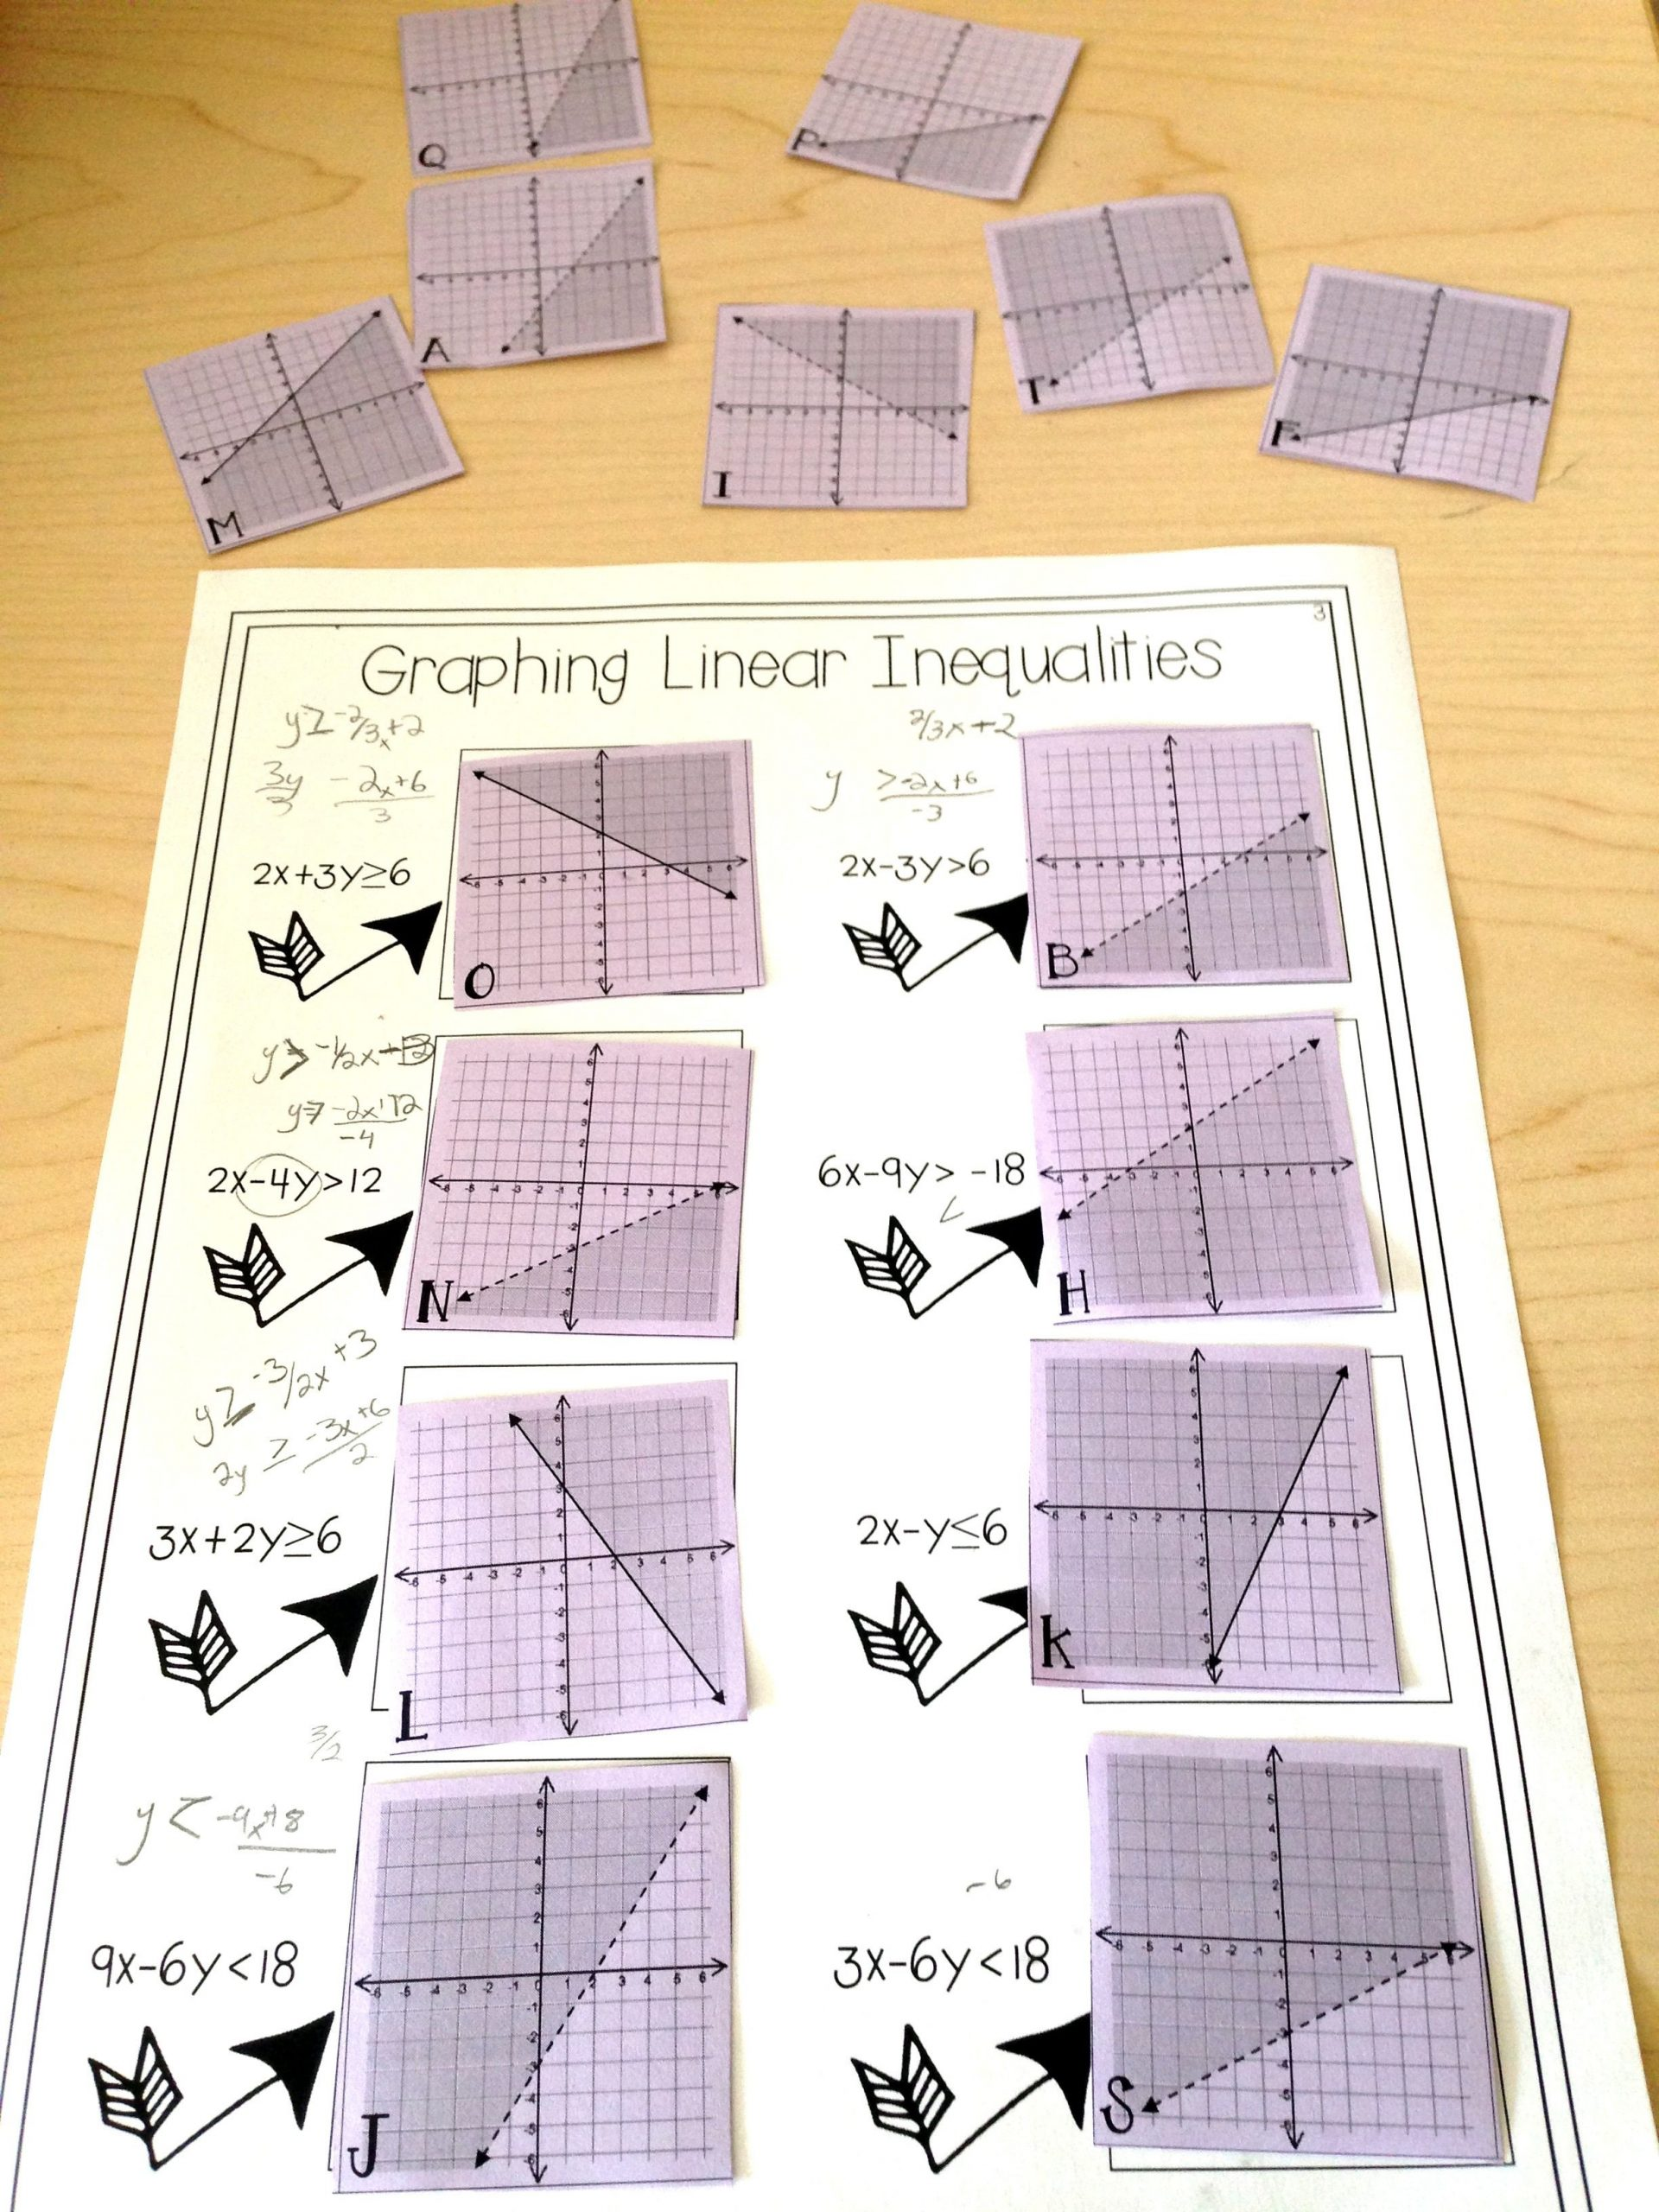 Graphing Linear Inequalities Worksheet Answers Graphing Linear Inequalities Card Match Activity